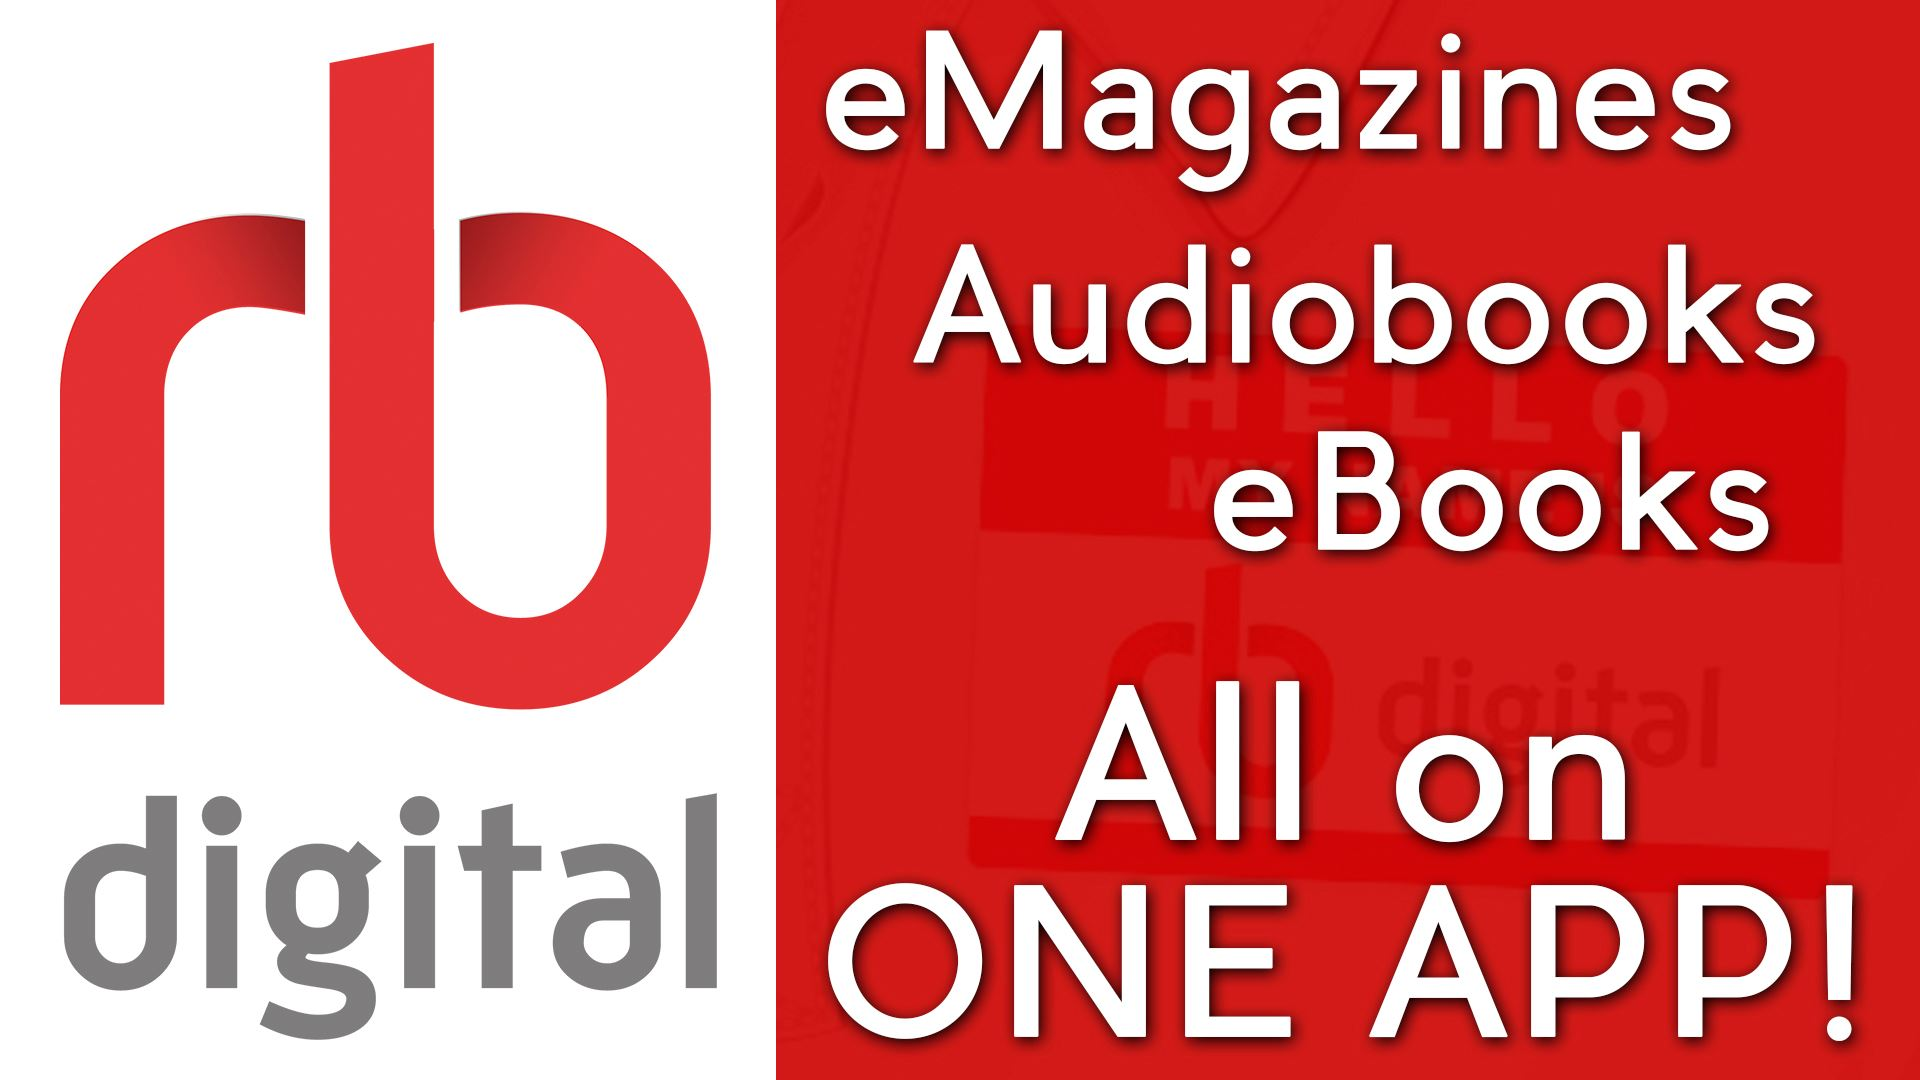 rb digital audiobooks, ebooks, emagazines